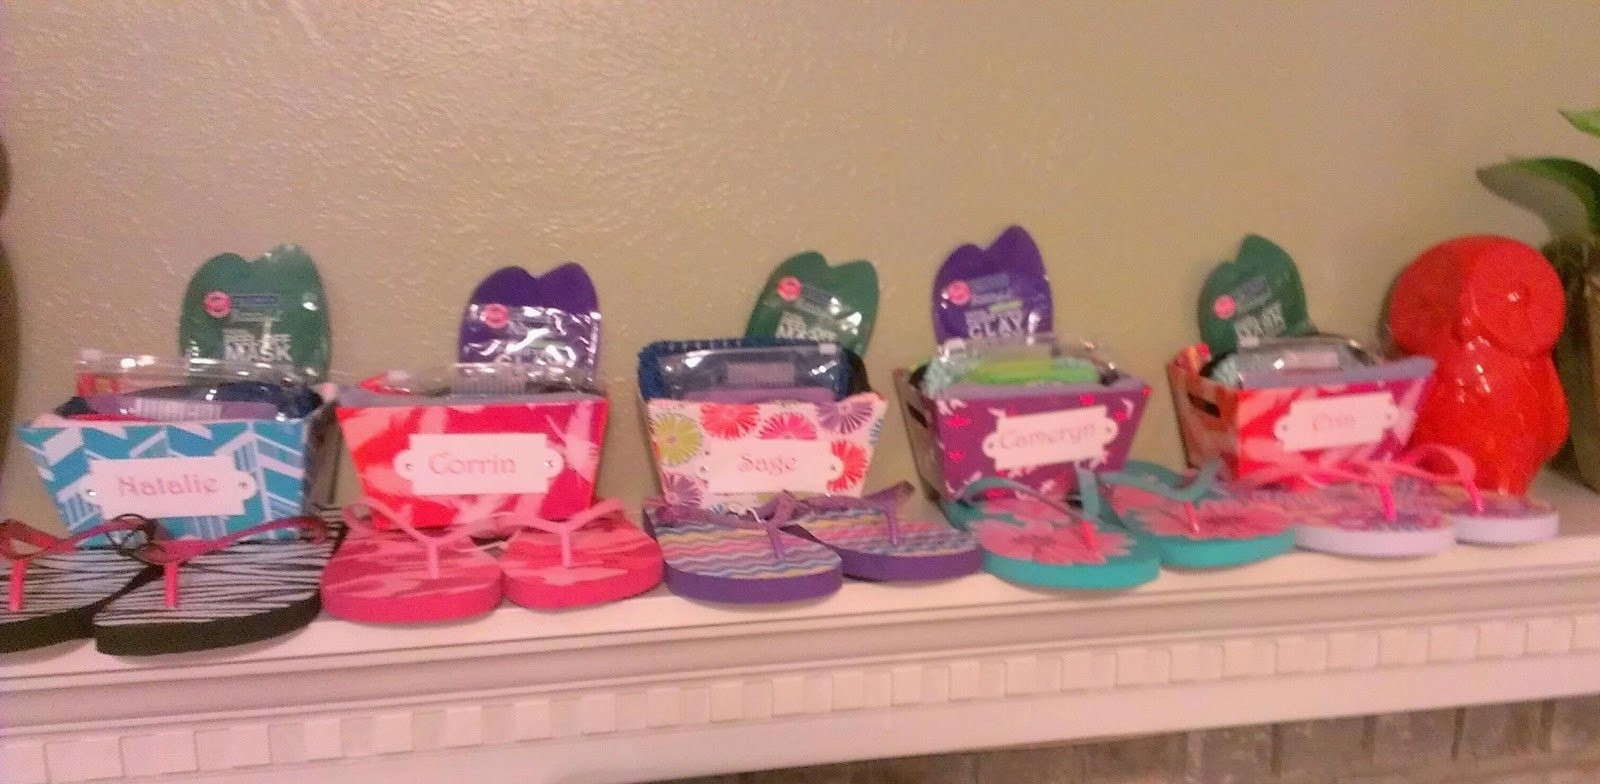 10 Gorgeous Birthday Party Ideas For 9 Yr Old Girl Organized Designby Jess Time Spa